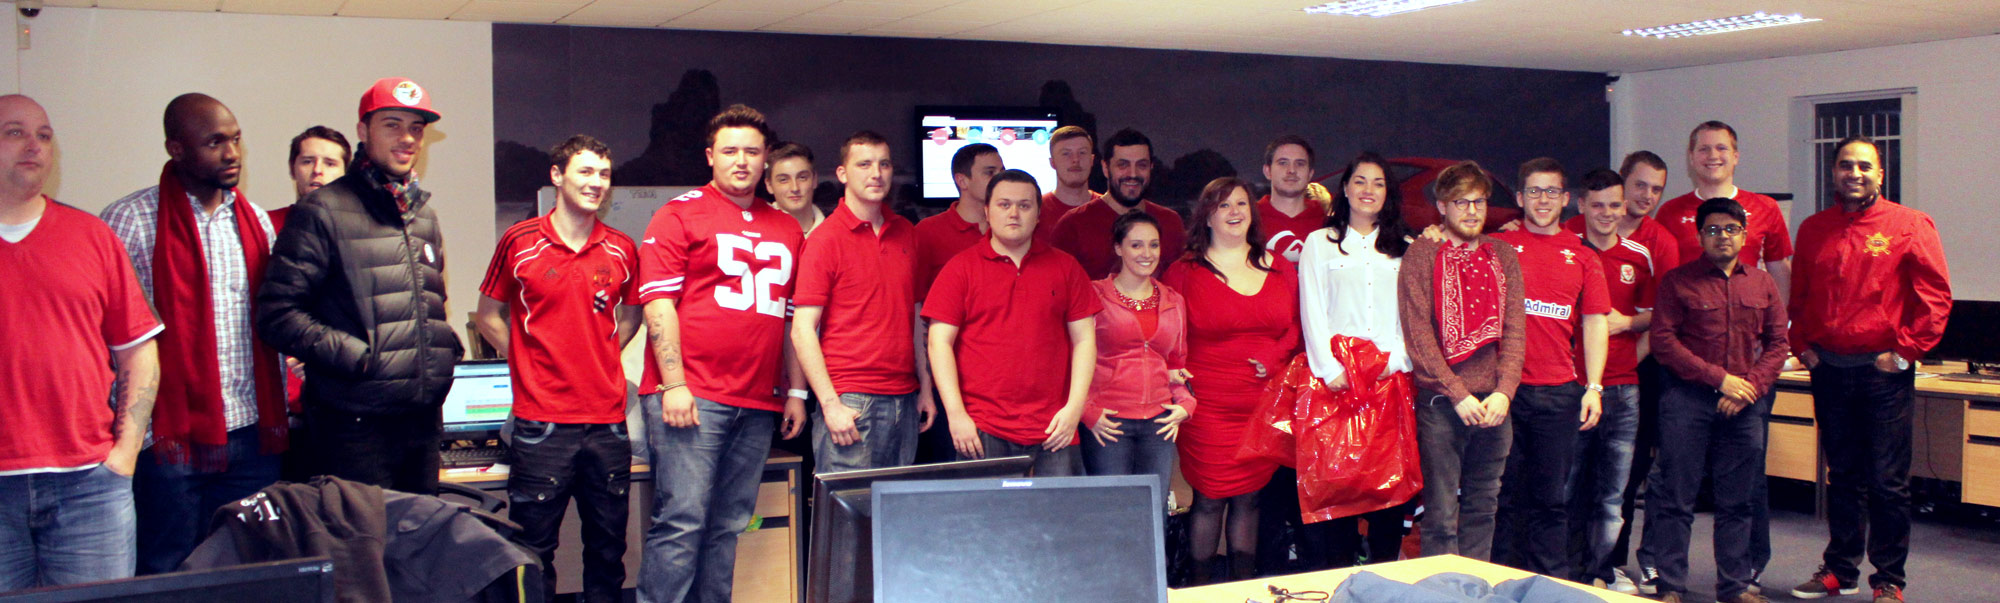 Limo Broker Staff Wear Red for British Heart Foundation 'Wear it, Beat it' Campaign